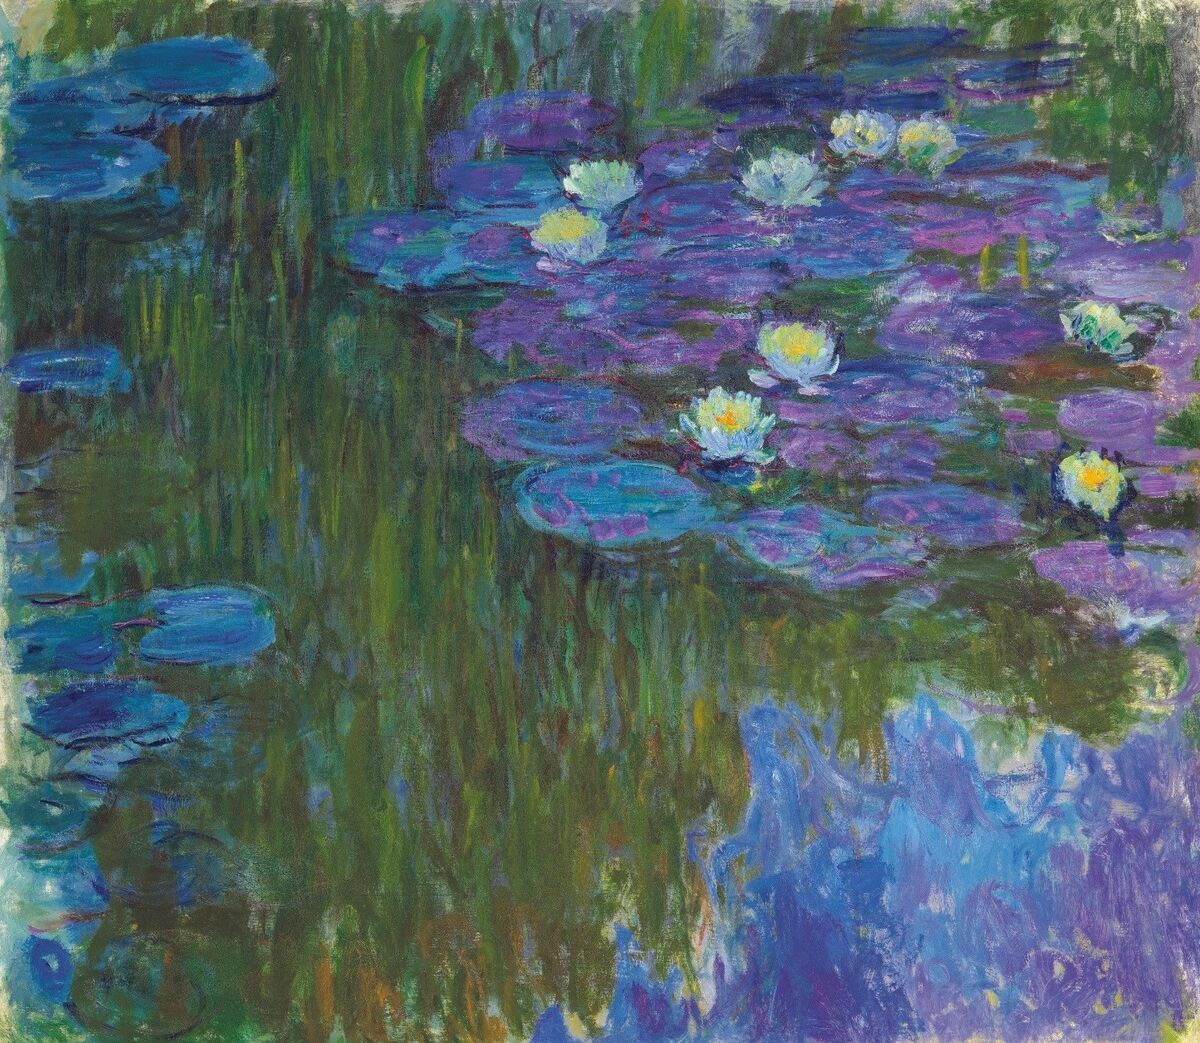 Claude Monet, Nymphéas en fleur, 1914-17. Courtesy of Christie's.